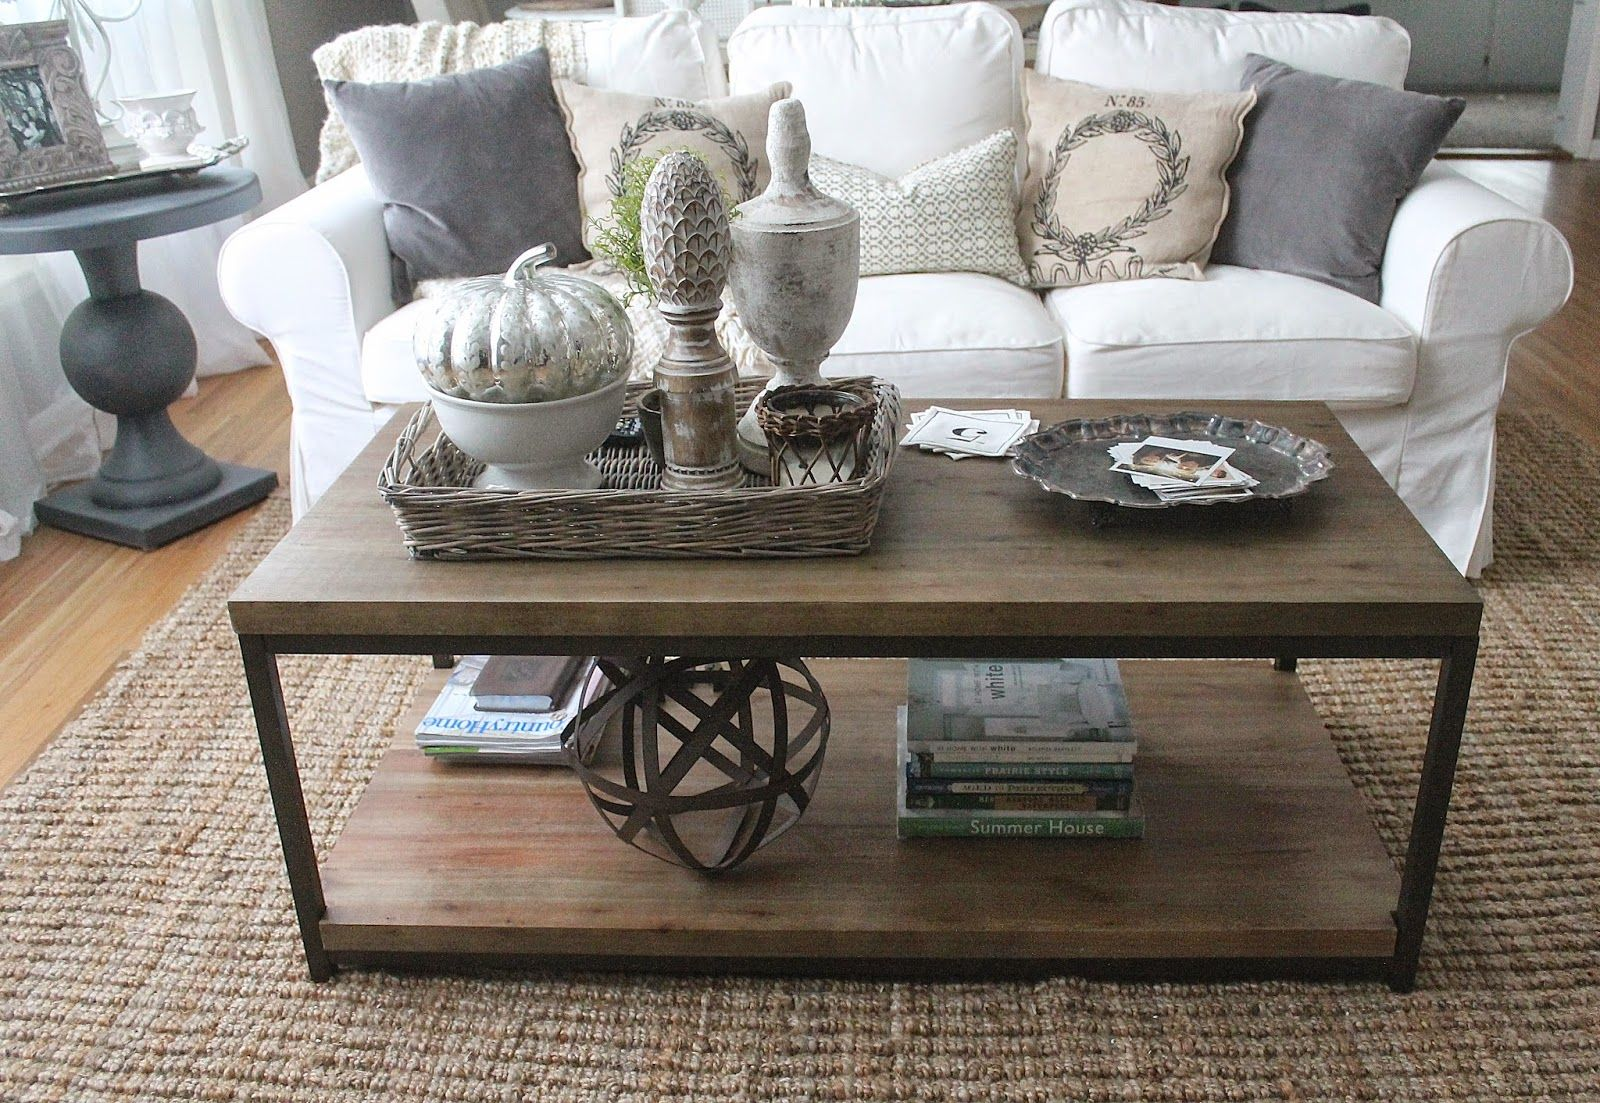 Tray Table Decor Ideas Eclectic Home Tour  12Th And White Blog  Coffee Living Rooms